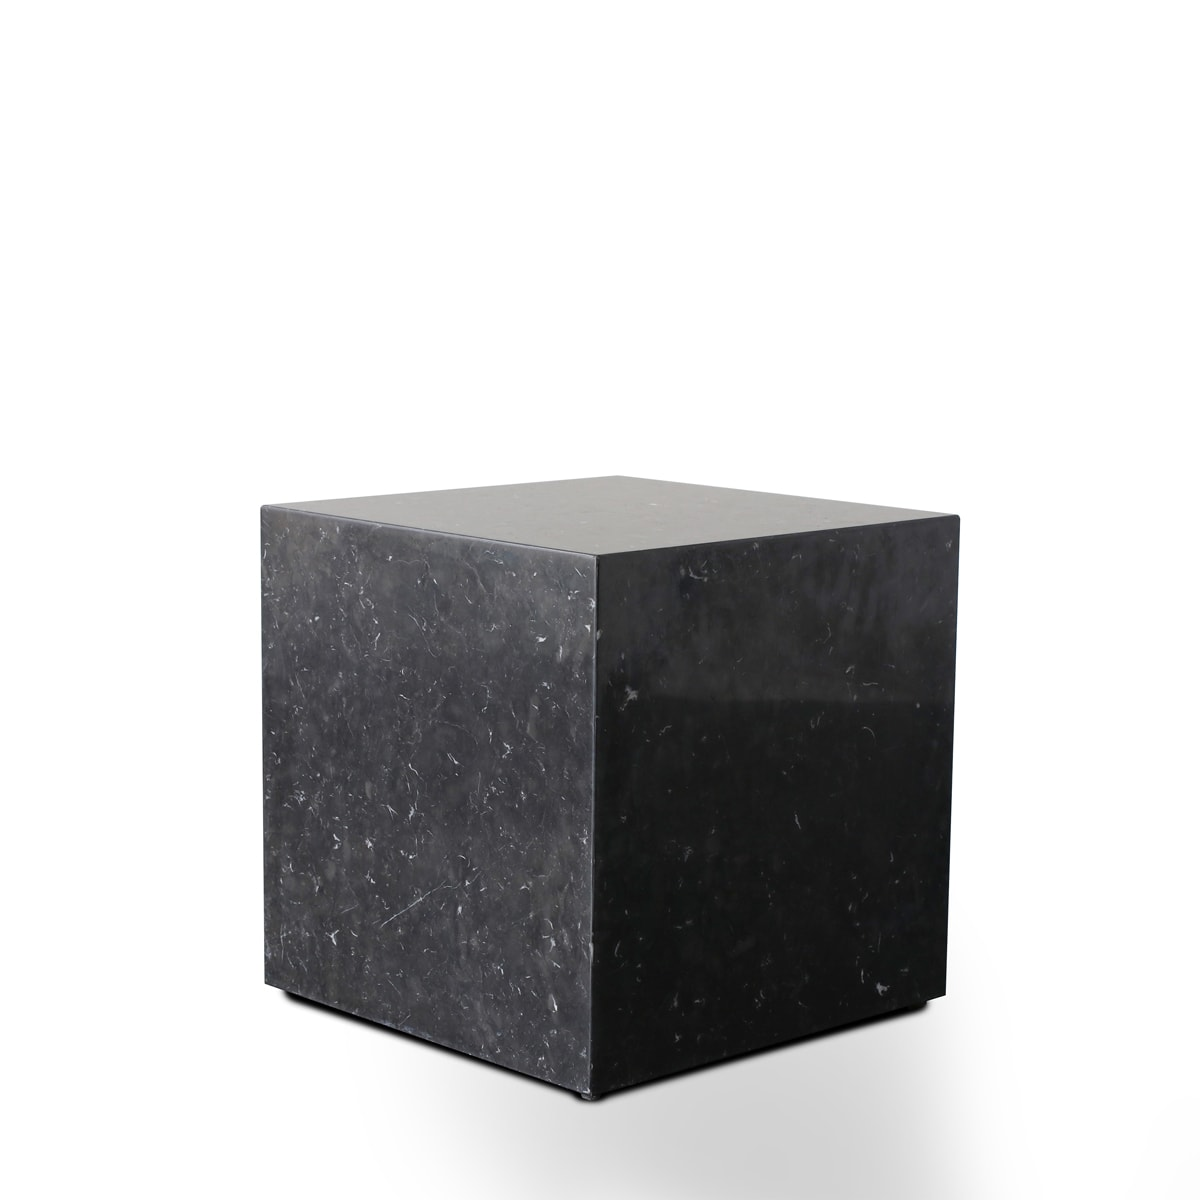 Stage Marble Side Table Low - Black Marble